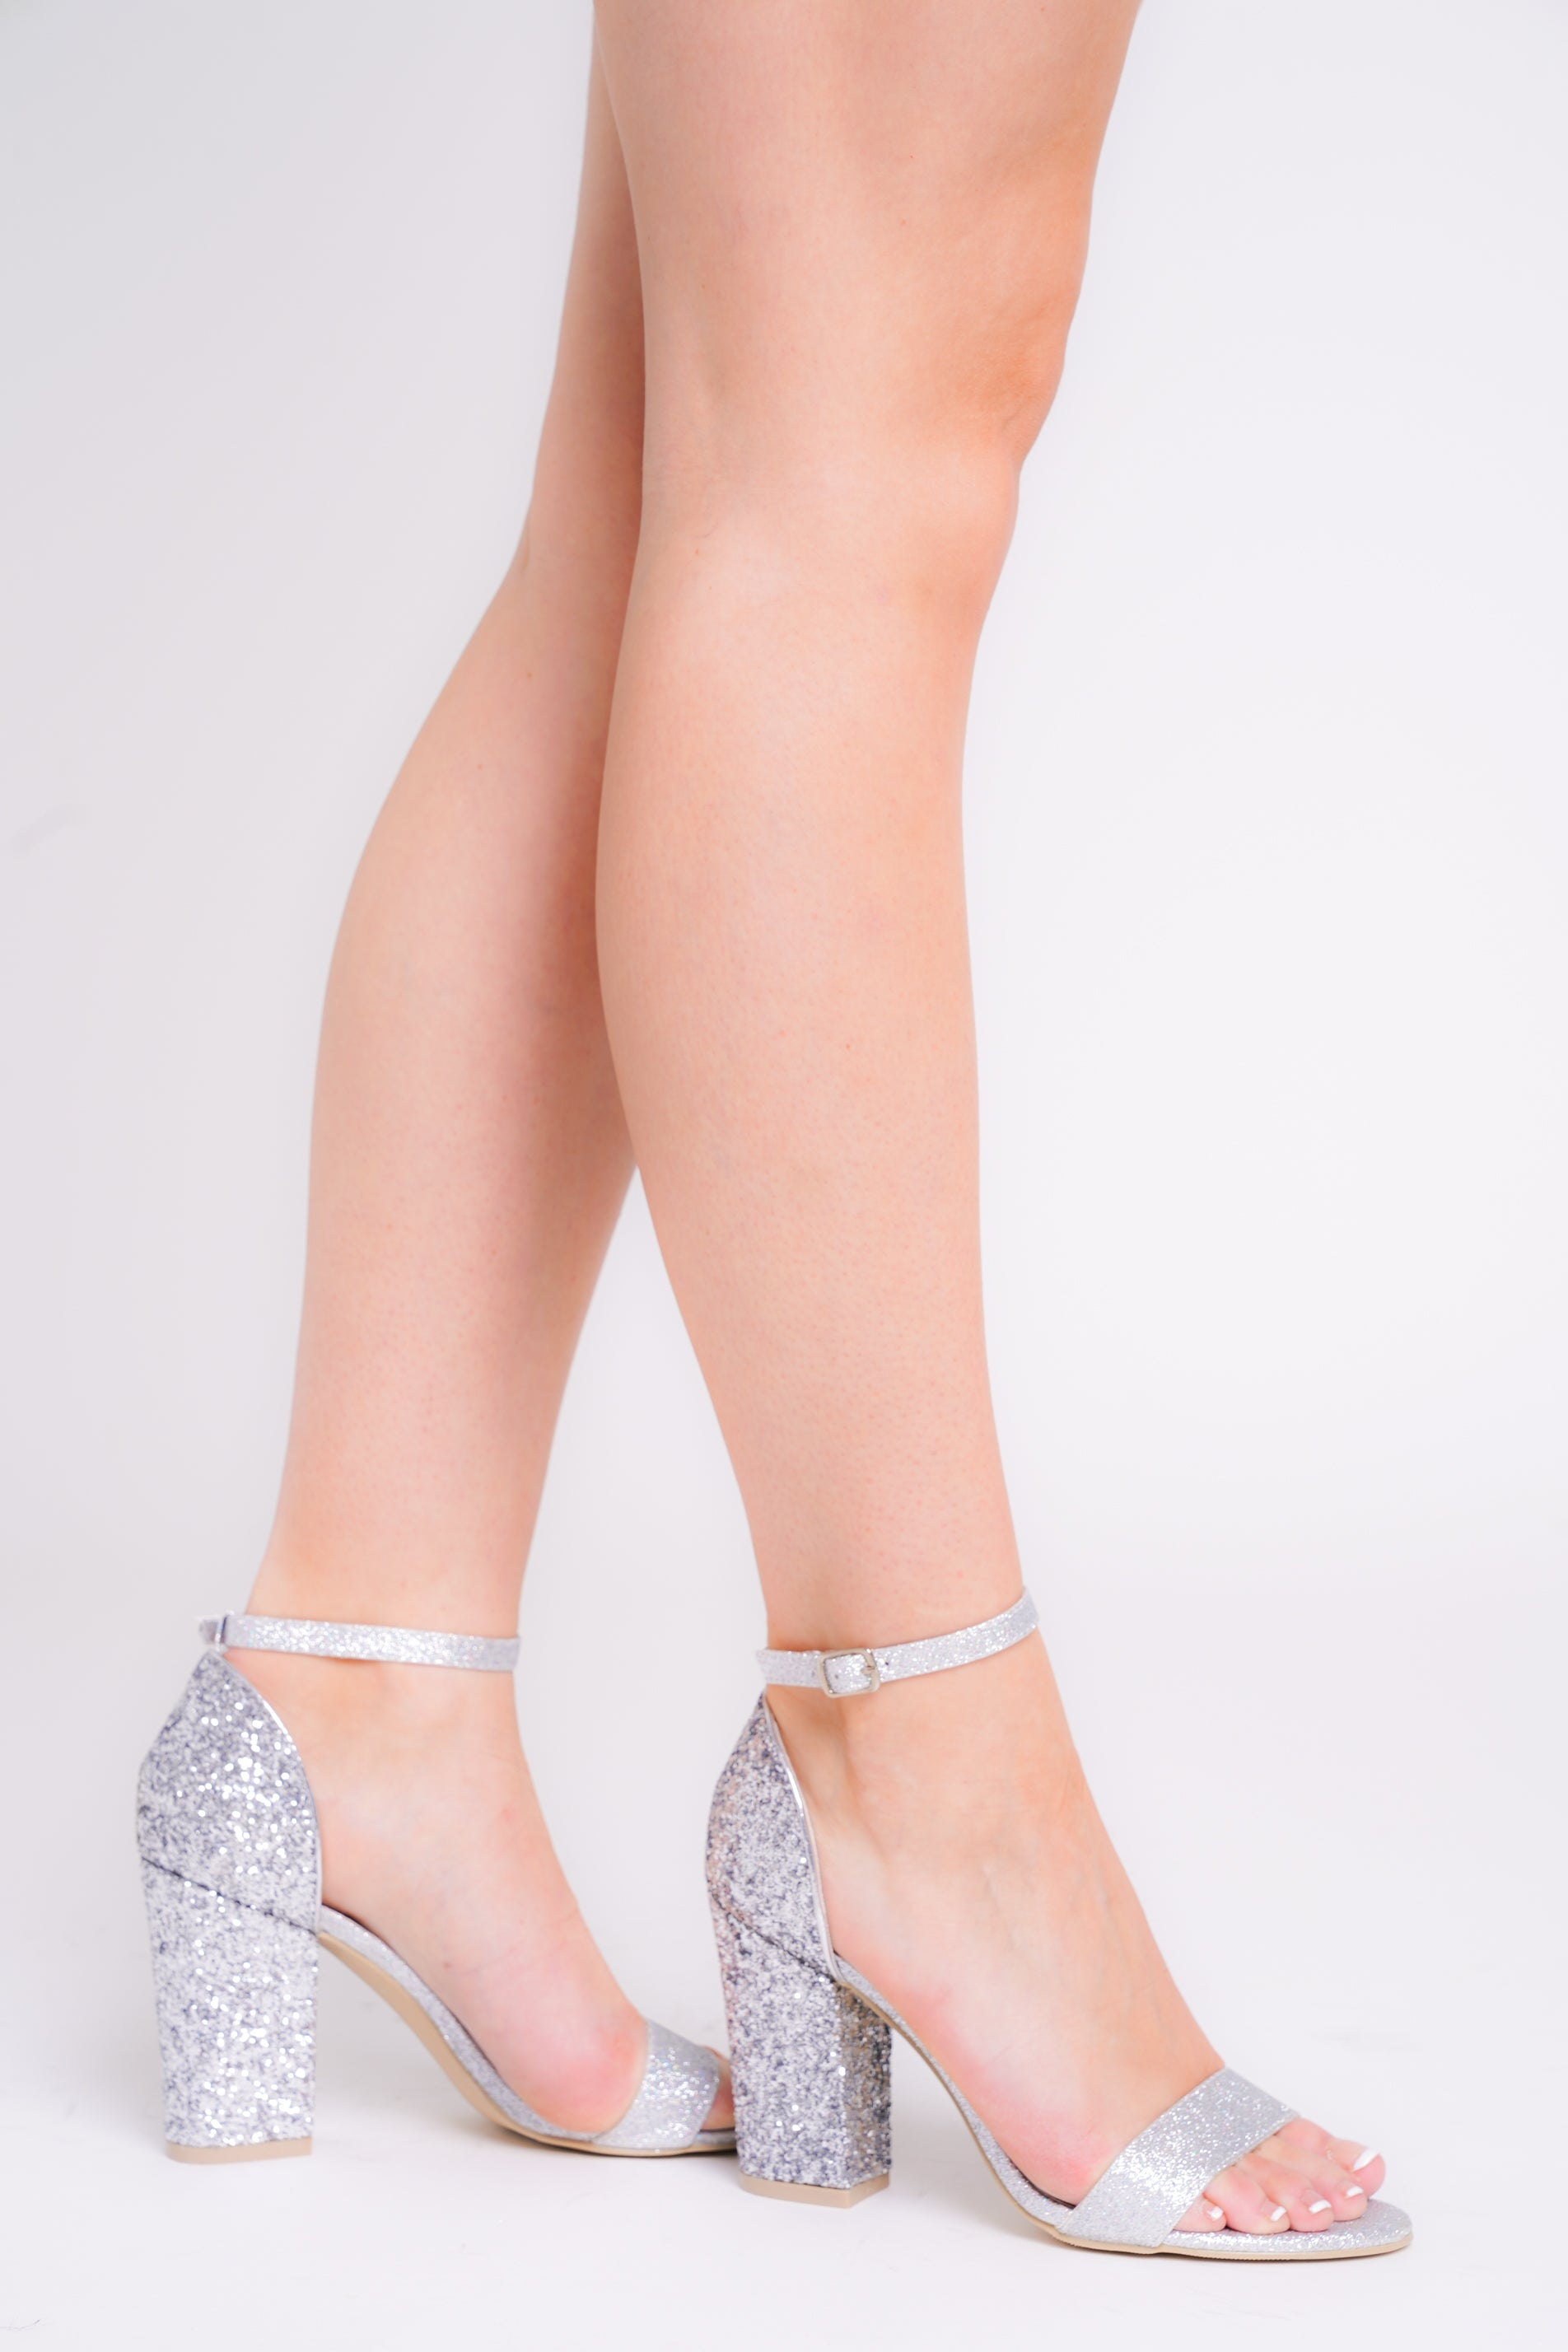 Siena Silver Glitter Barely There Strap Block Heels